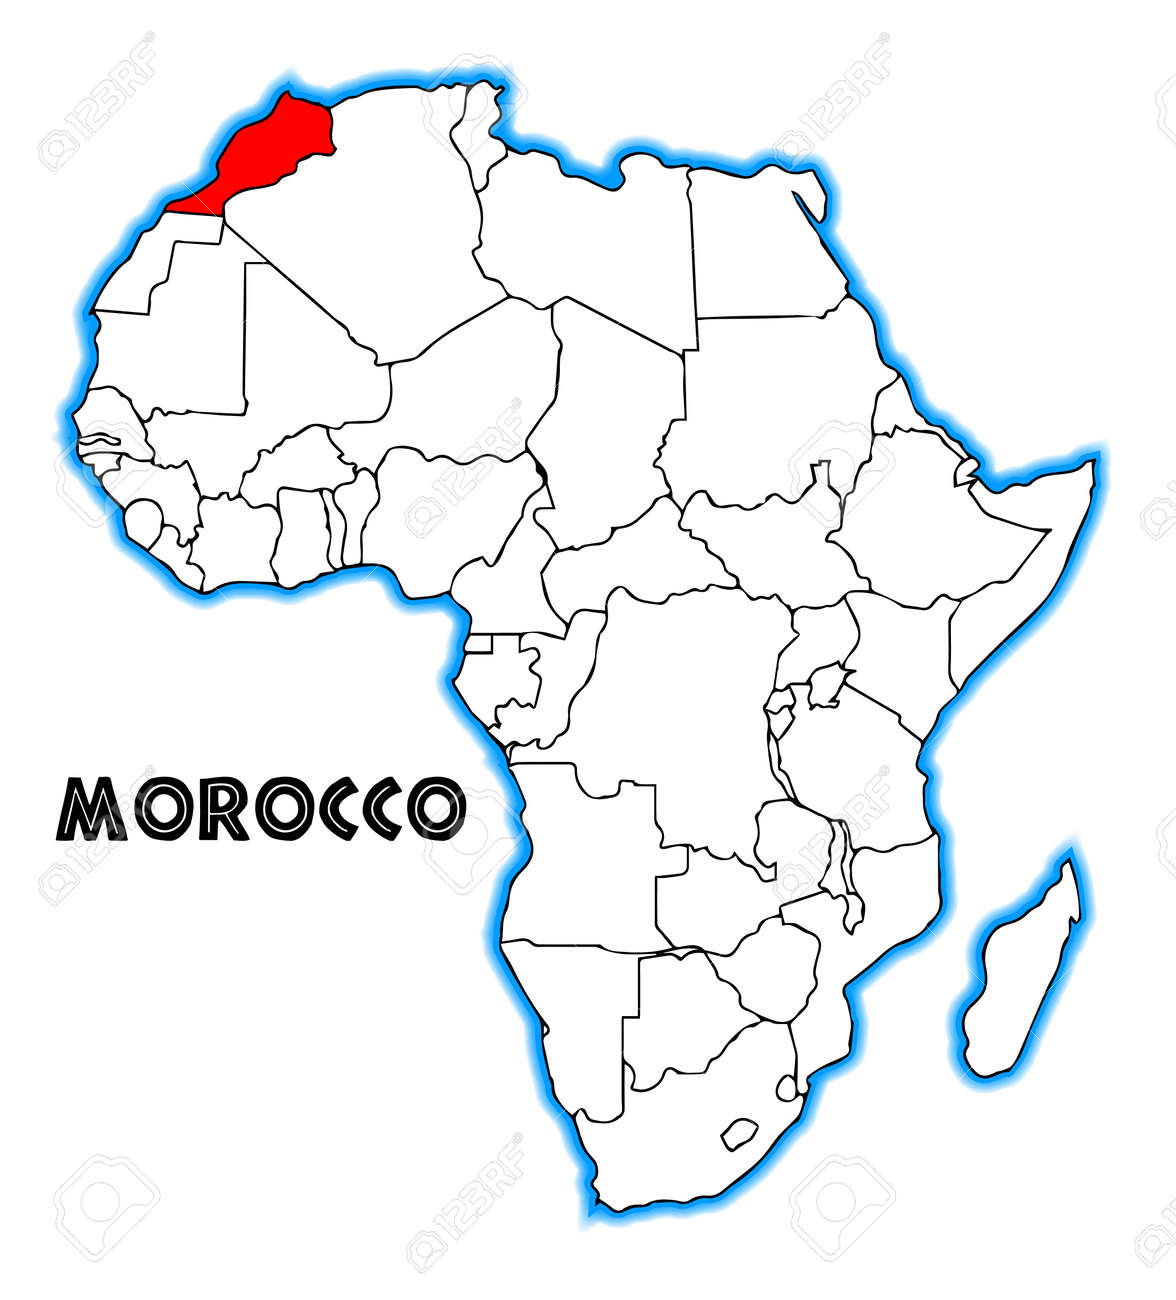 Morocco outline inset into a map of Africa over a white background on